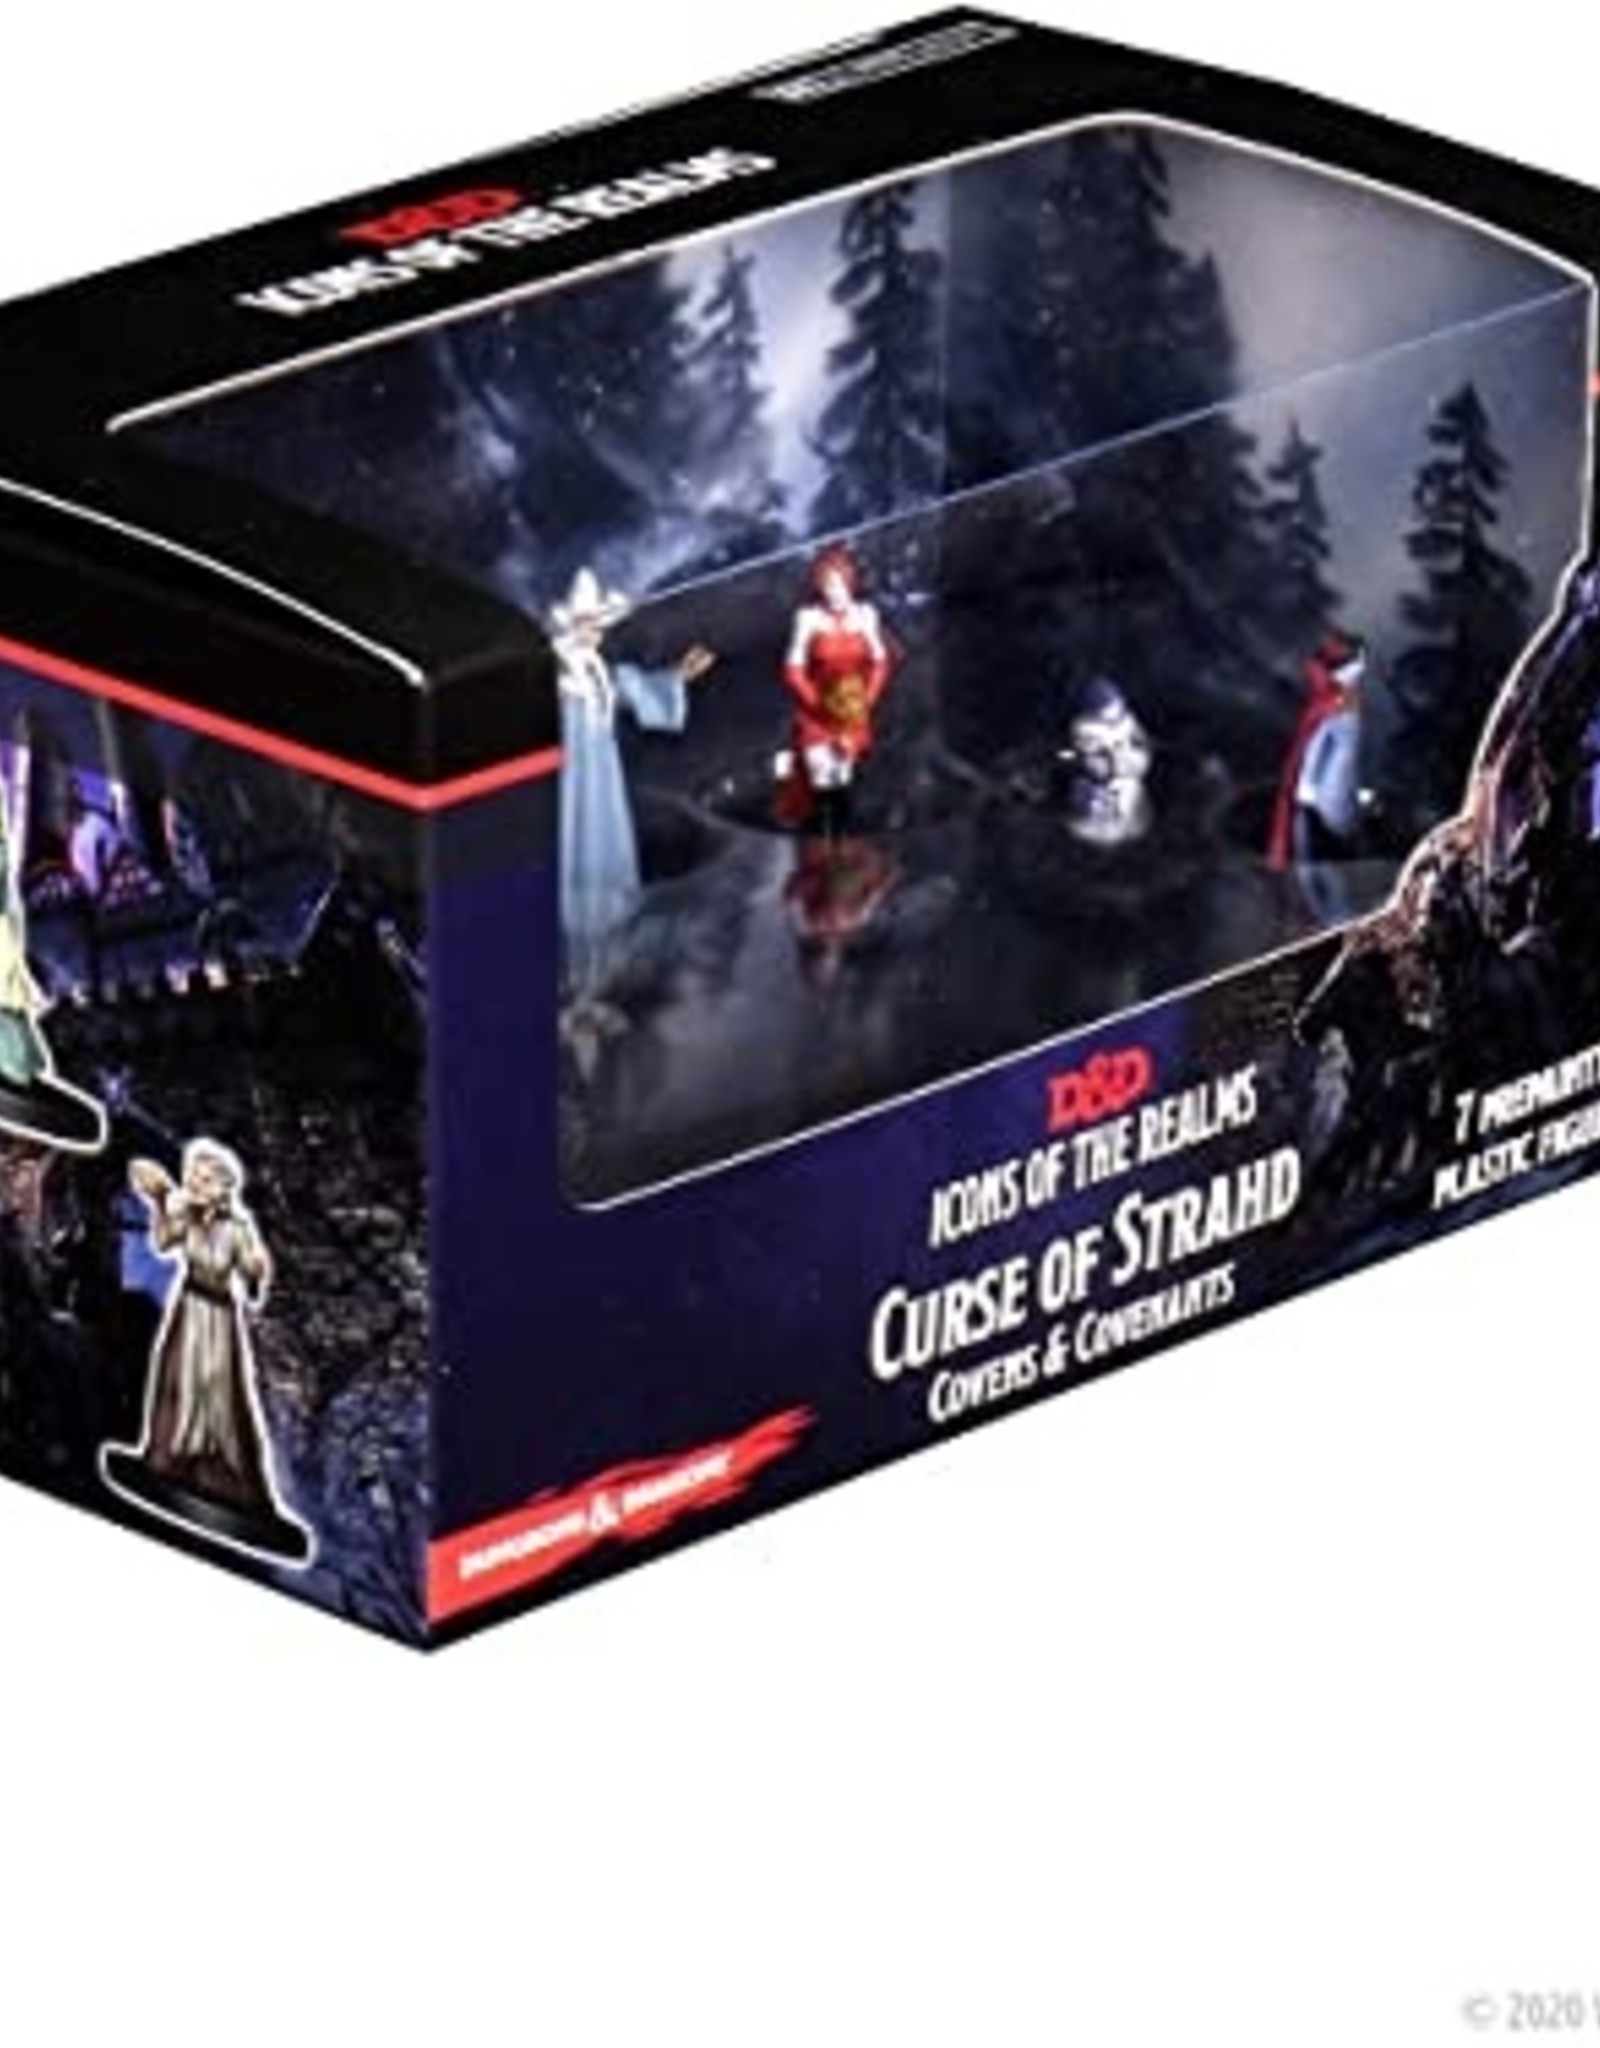 Wizkids D&D Icons of the Realms: Curse of Strahd - Covens & Covenants Premium Box